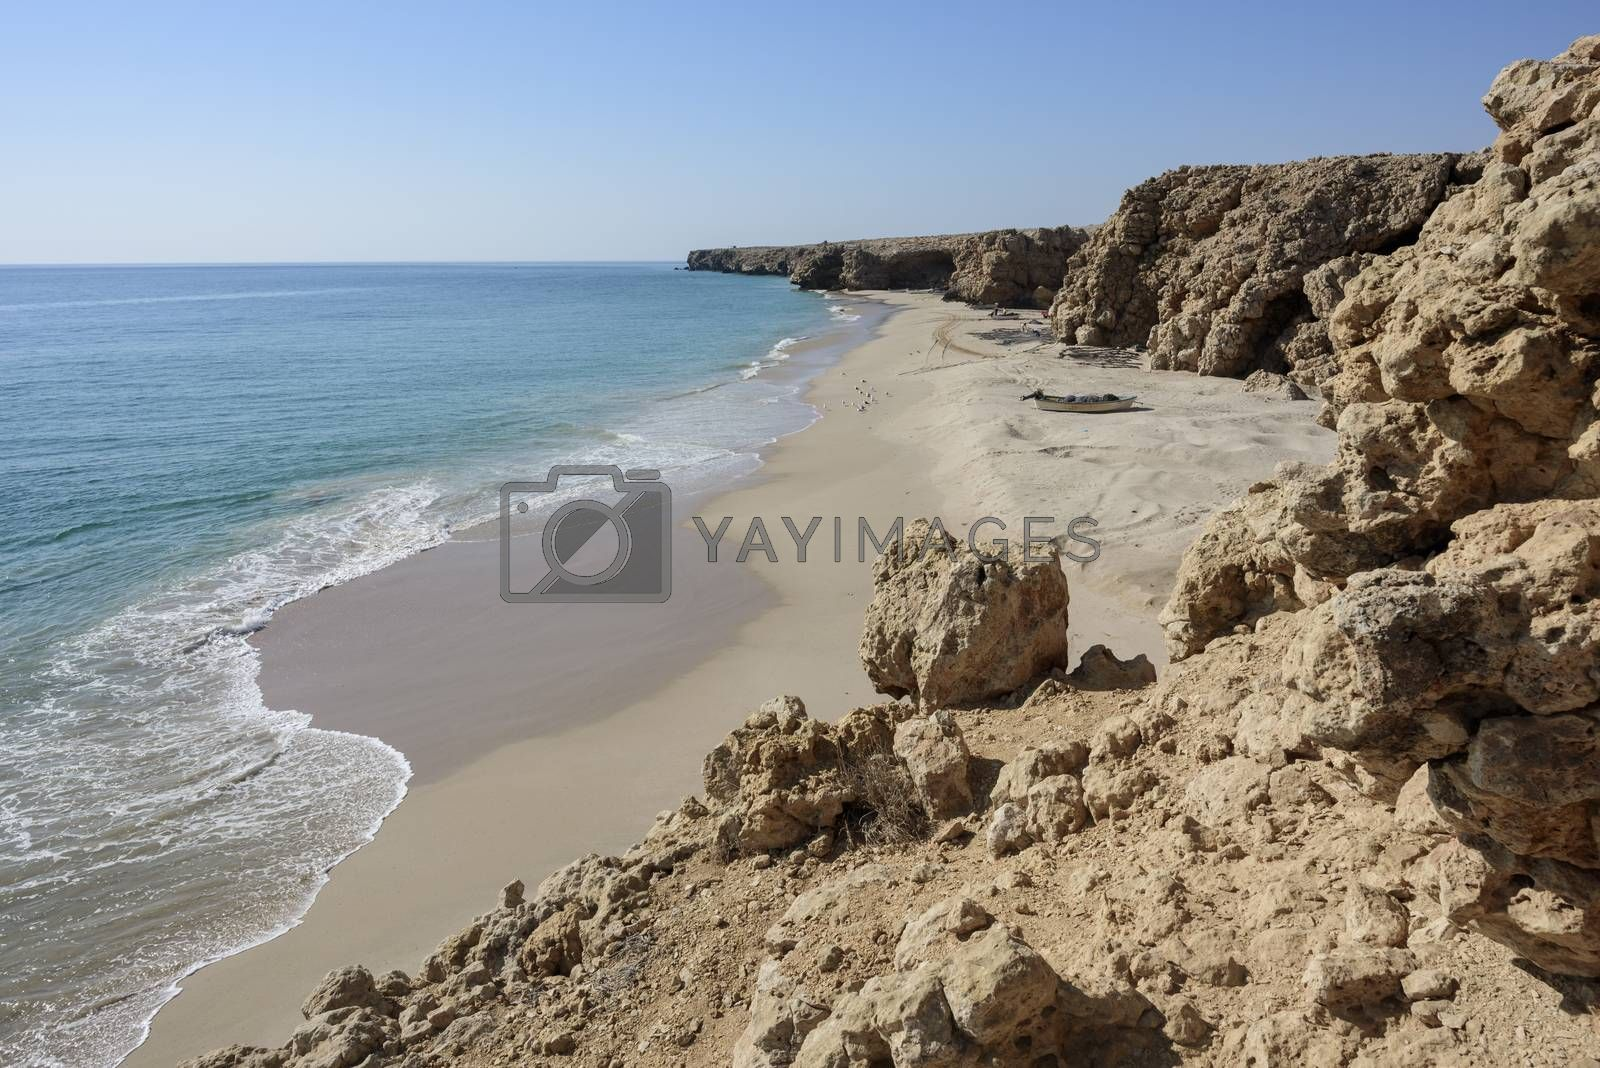 Wild beach at the coat of Ras Al Jinz, Sultanate of Oman.Fishermen of the nearest village use it as a fish harbor